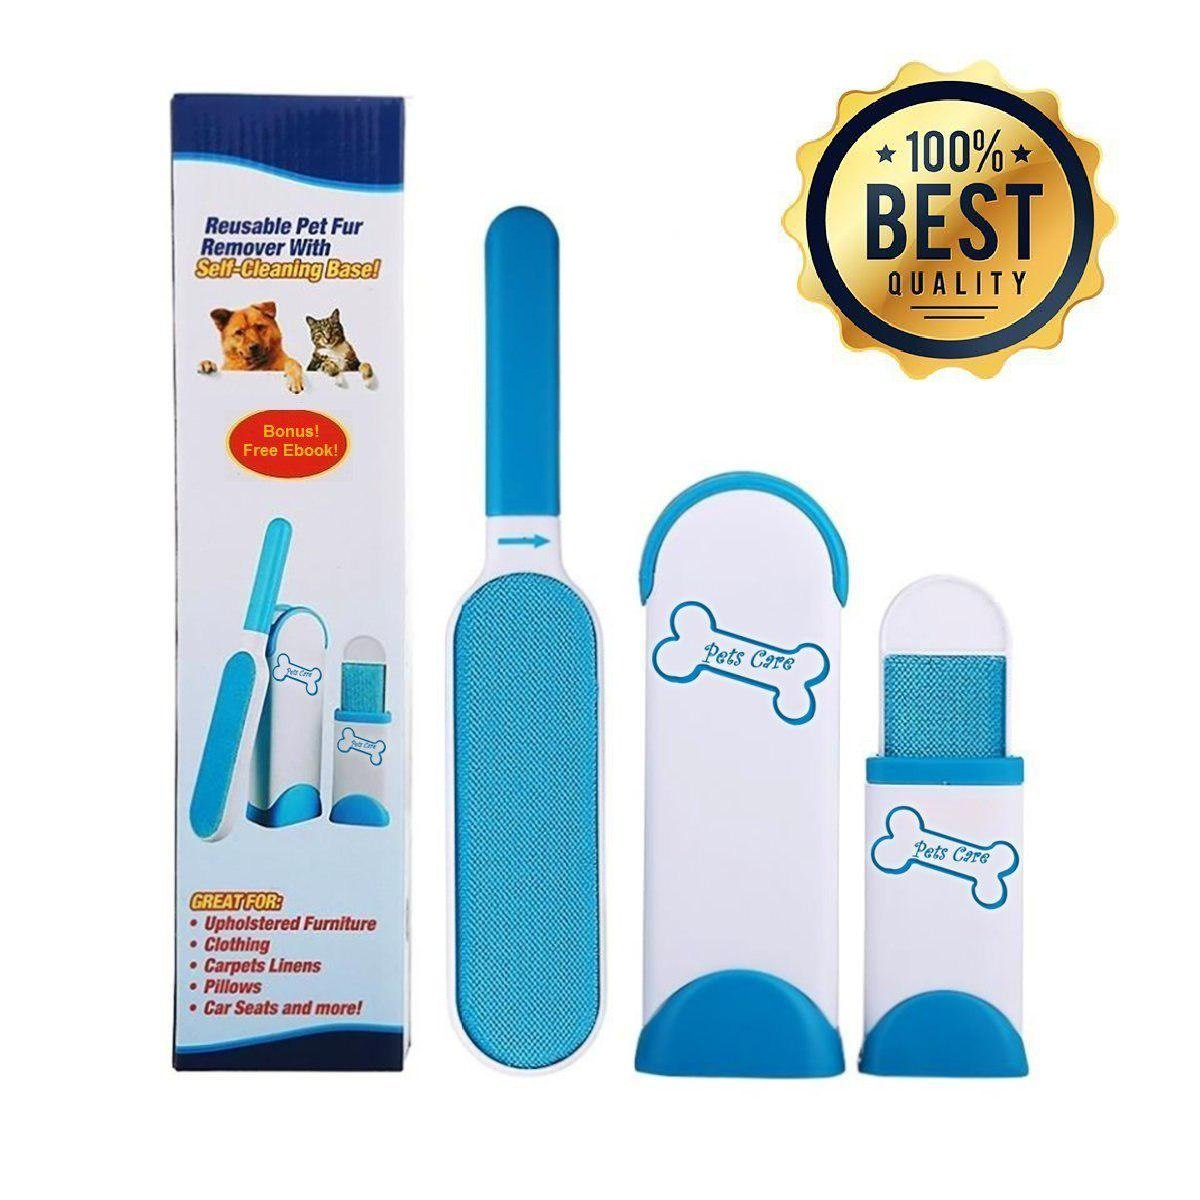 PetsCare Lint Remover and Fur Remover with Self-Cleaning Base and Double-Sided Brush Removes Dog Cat Horse and Pet Fur and Hair (FREE EBOOK) … (Blue and White)